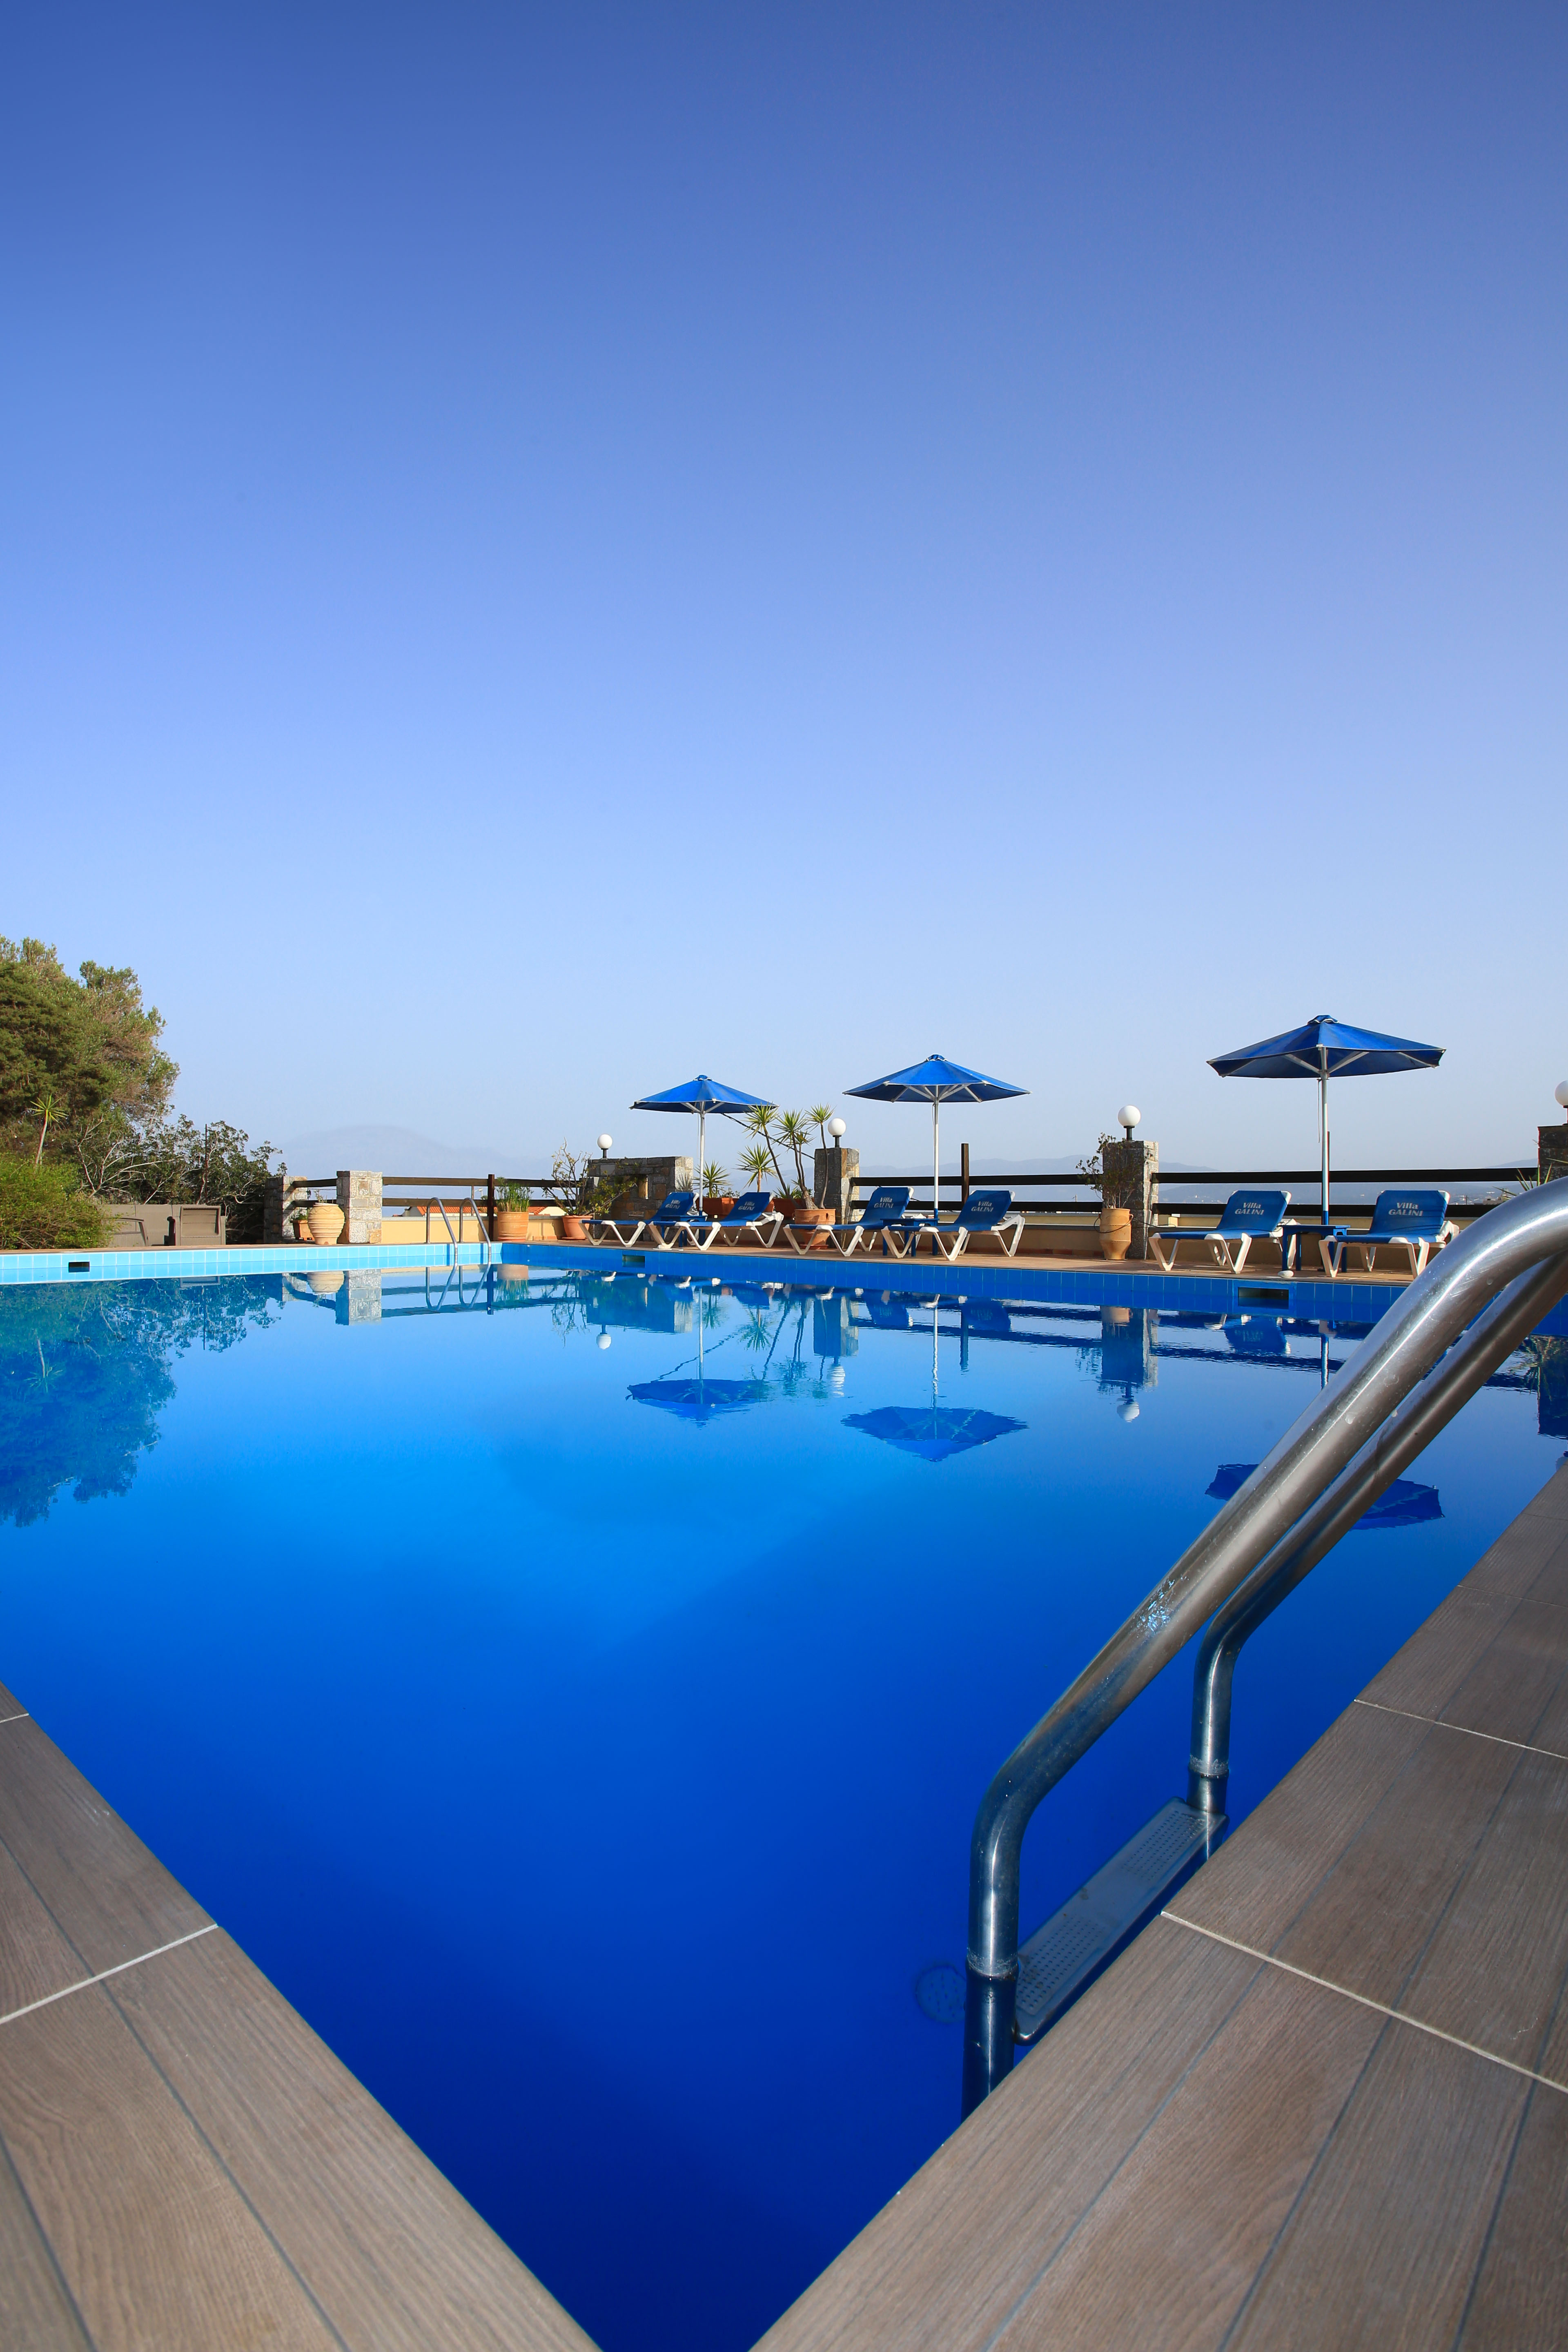 Beautiful hotel complex in desired location. Sea views and pool.